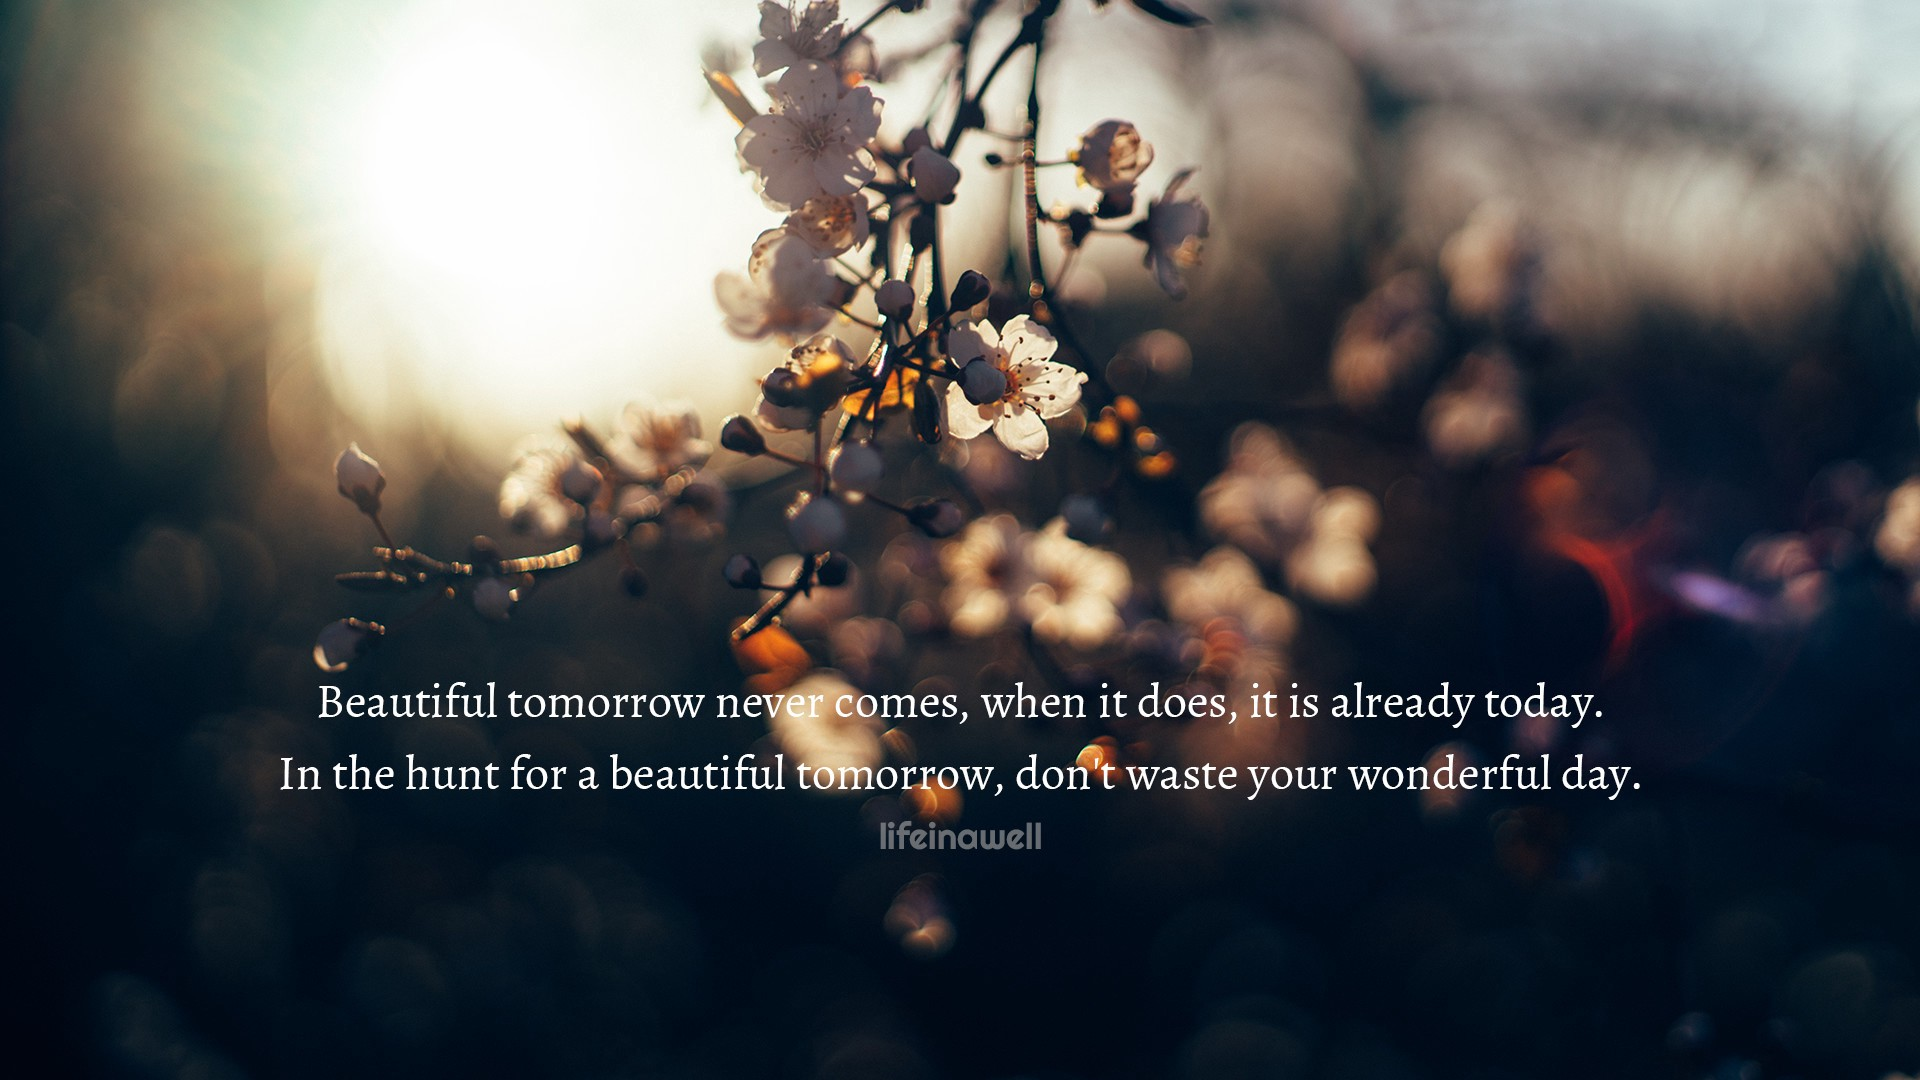 Beautiful Tomorrow Never Comes Life In A Well Quotes Medium